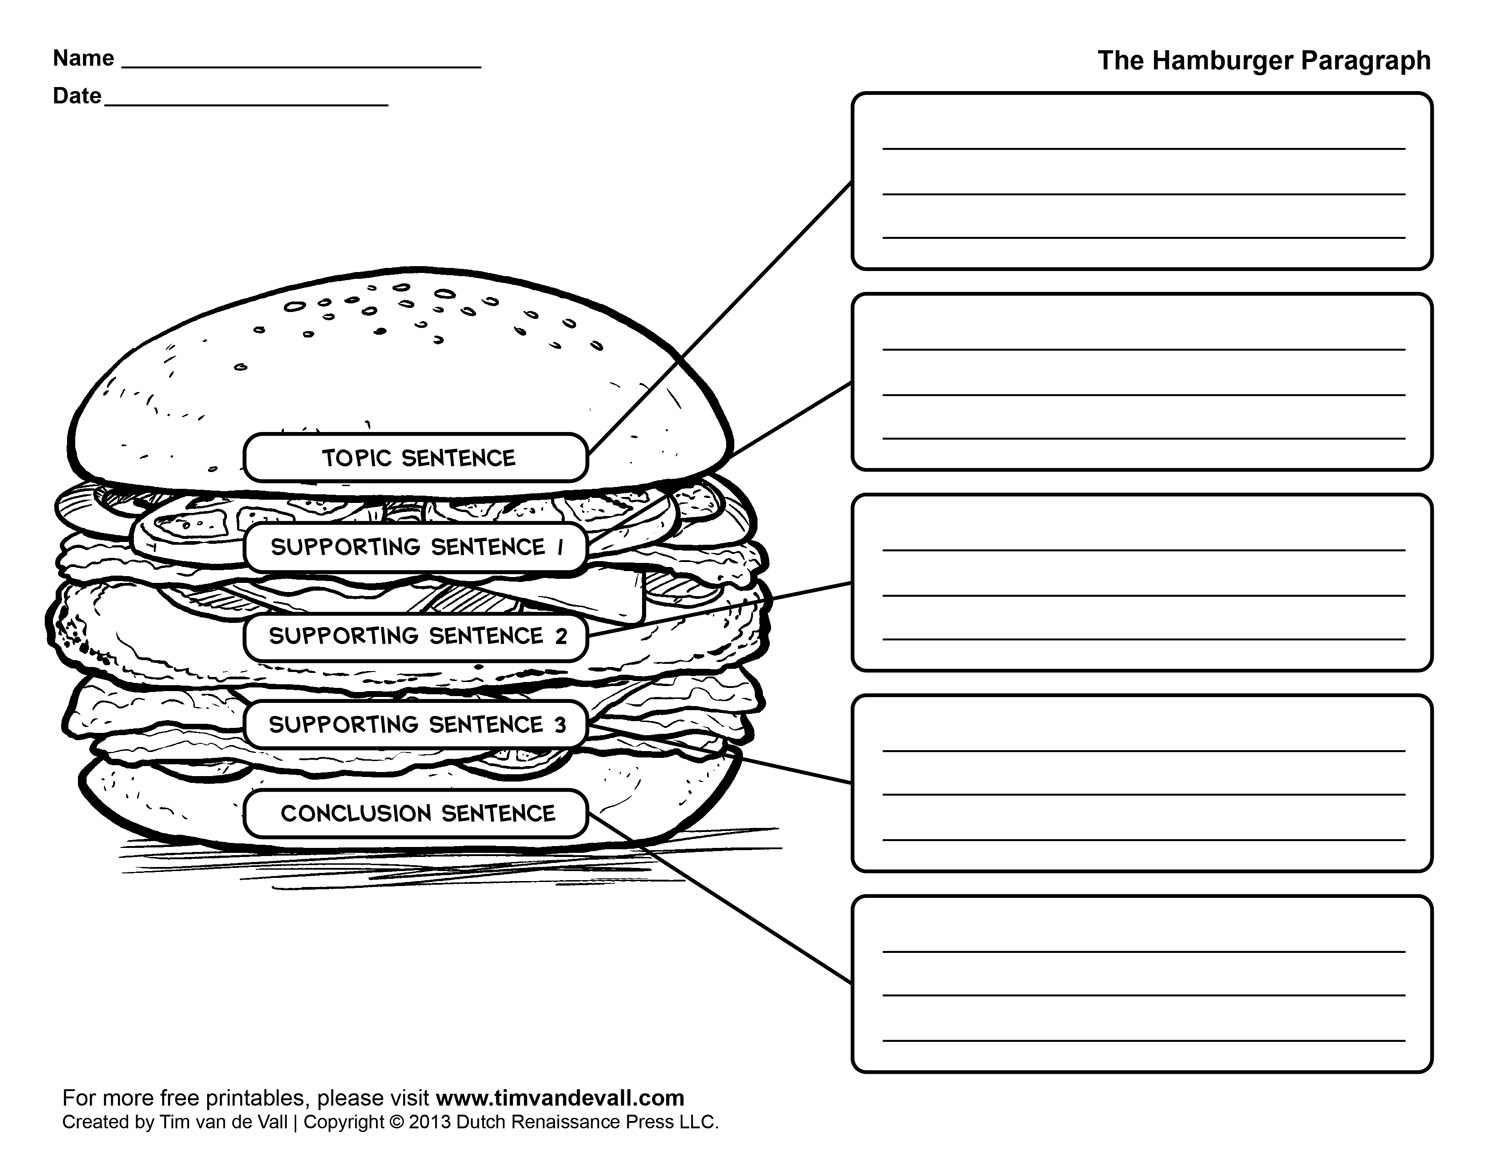 Worksheets Writing Paragraphs Worksheet hamburger paragraph worksheet language arts printables worksheet